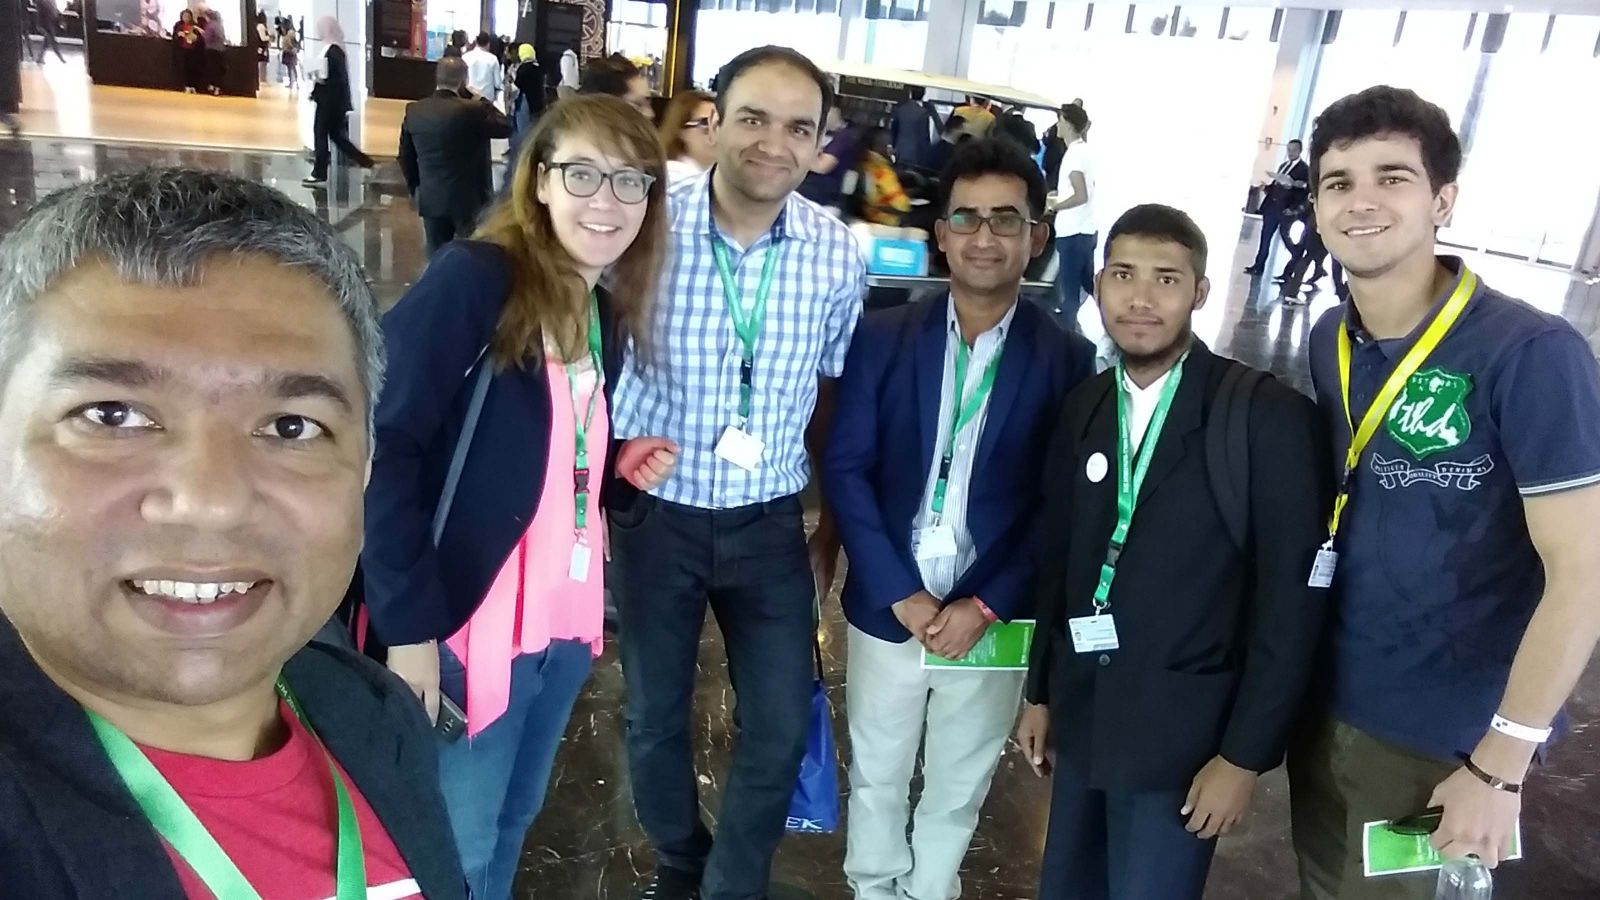 Dr Saud Khan with other delegates at the World Youth Forum, 2018 in Cairo, Egypt.